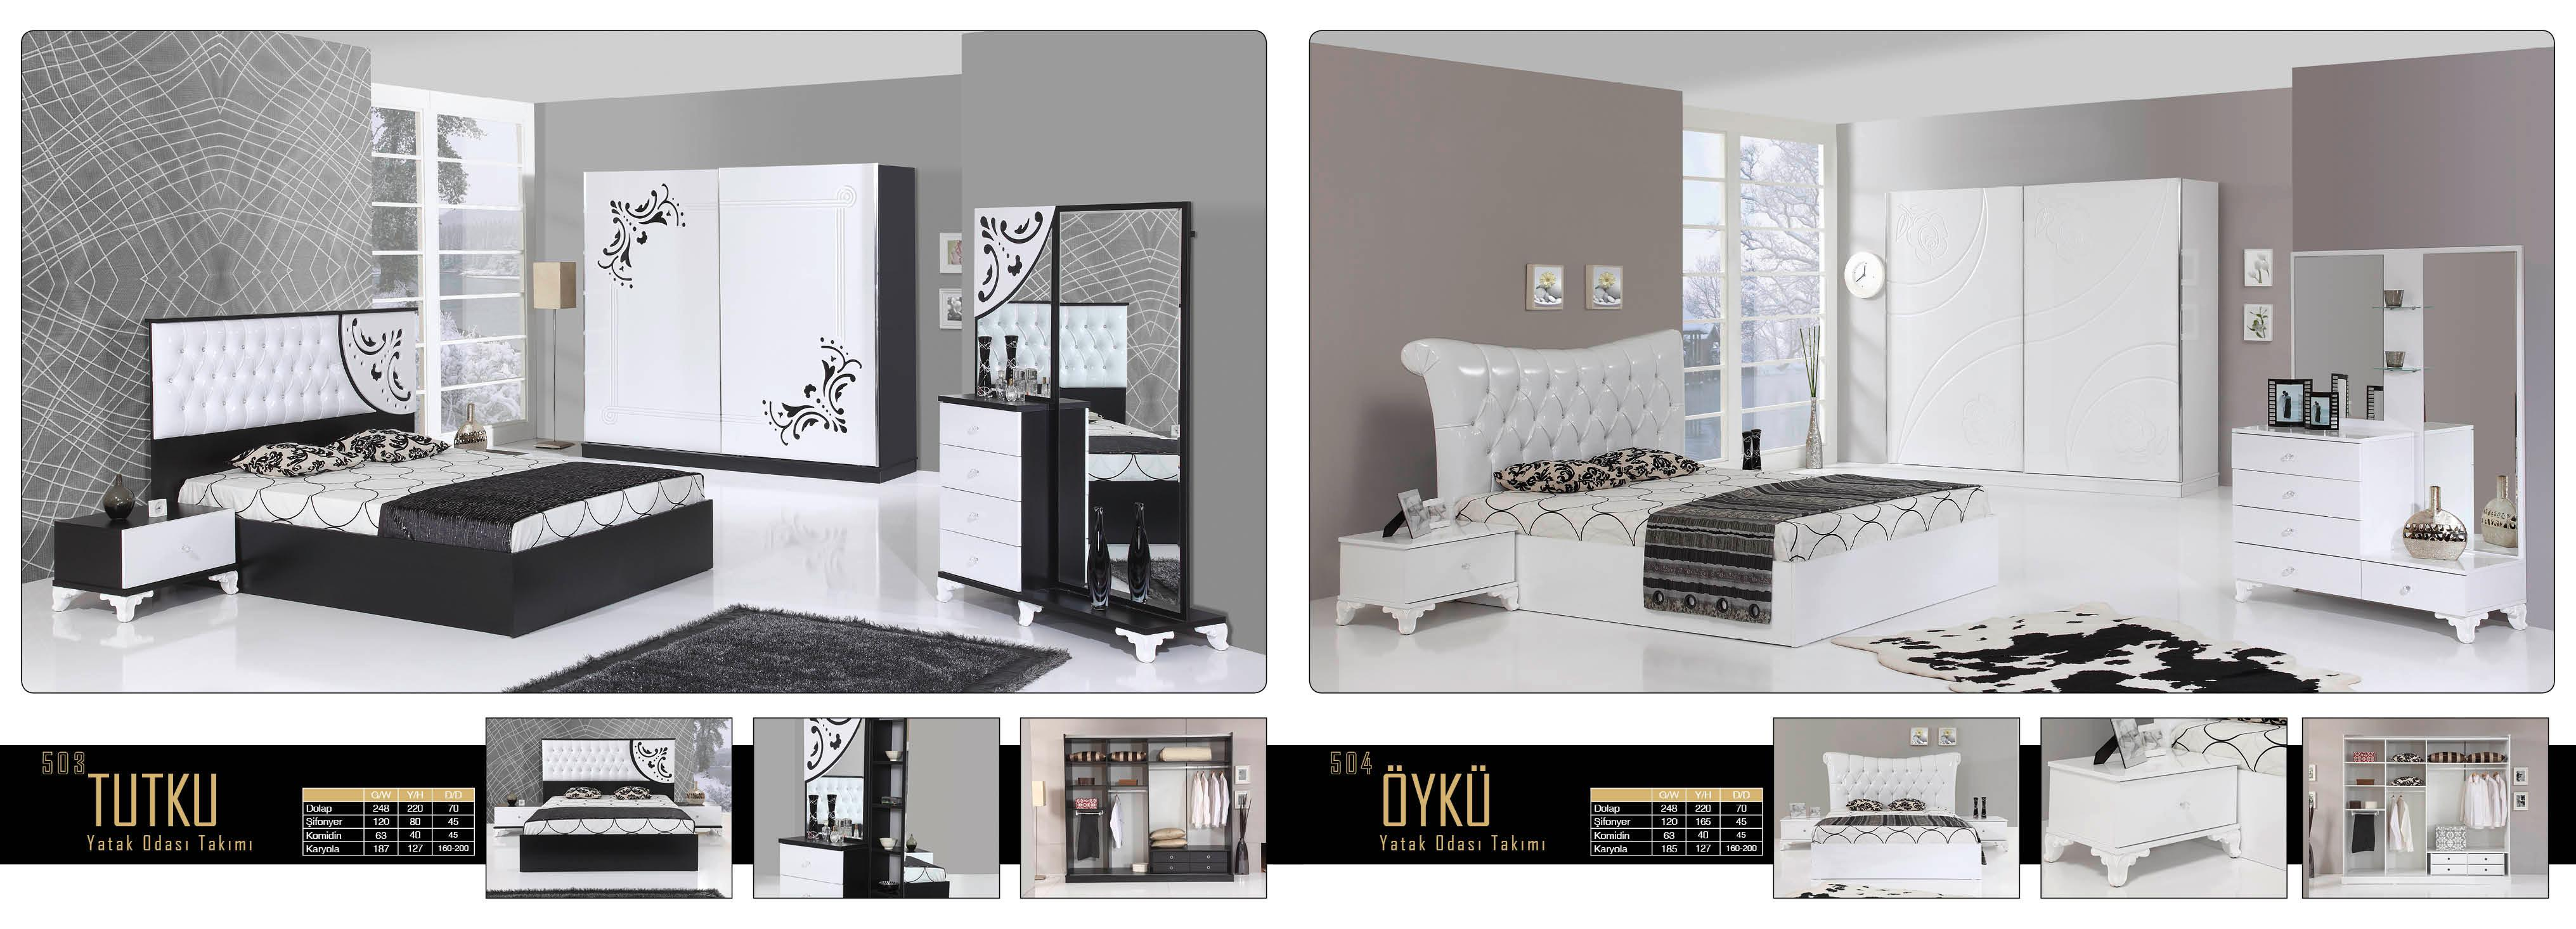 Beautiful Chambre A Coucher Turque 2 Ideas - Yourmentor.info ...